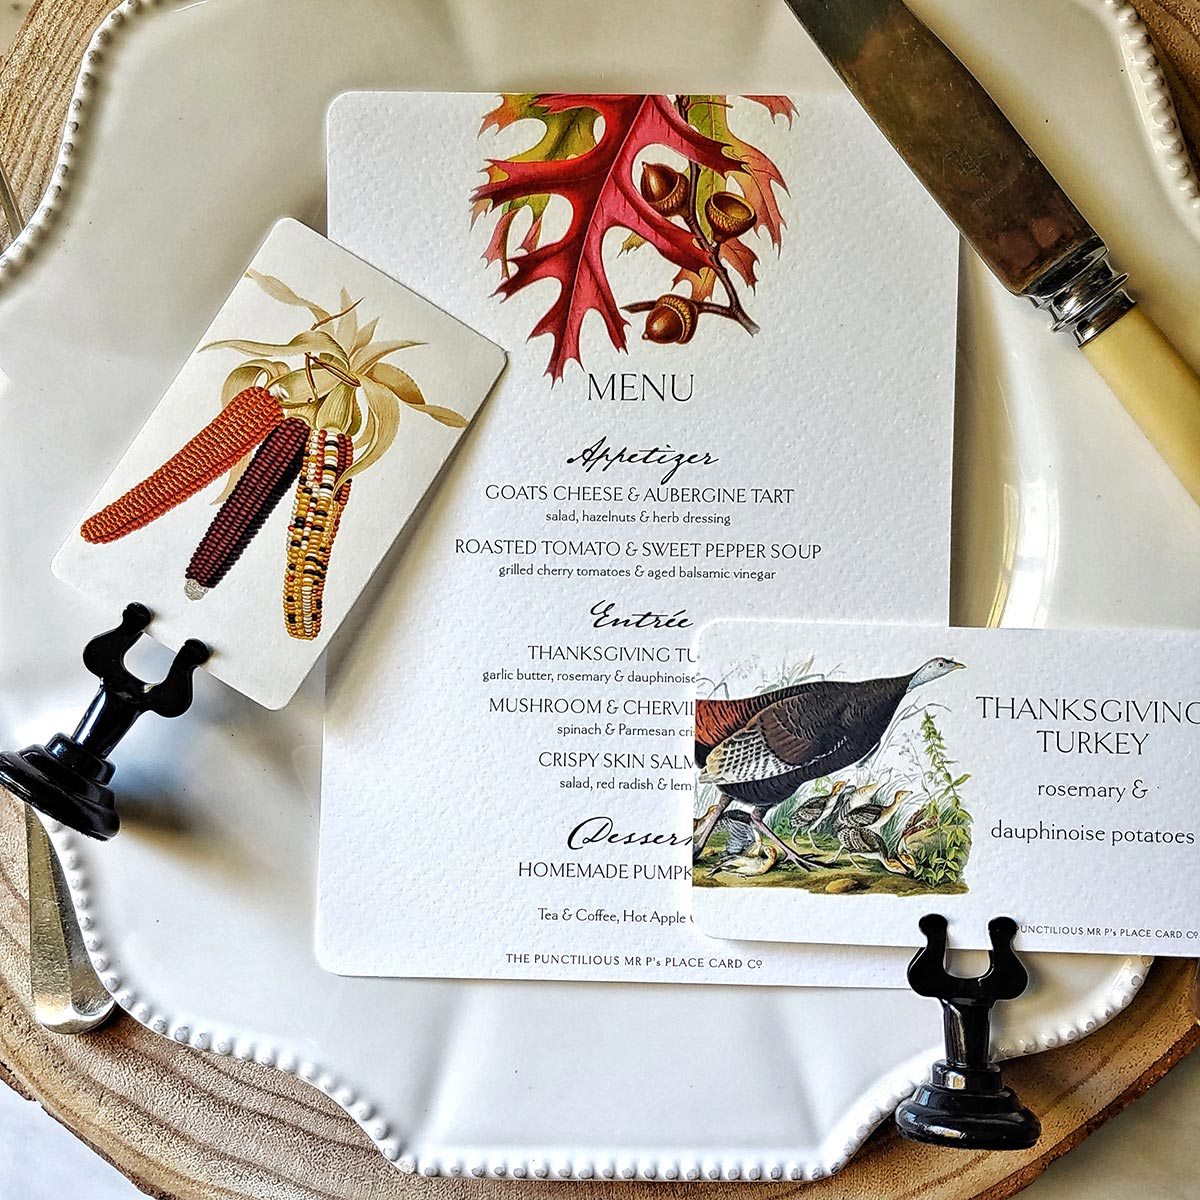 The Punctilious Mr. P's Party Suite of place cards, menu cards and buffet tags